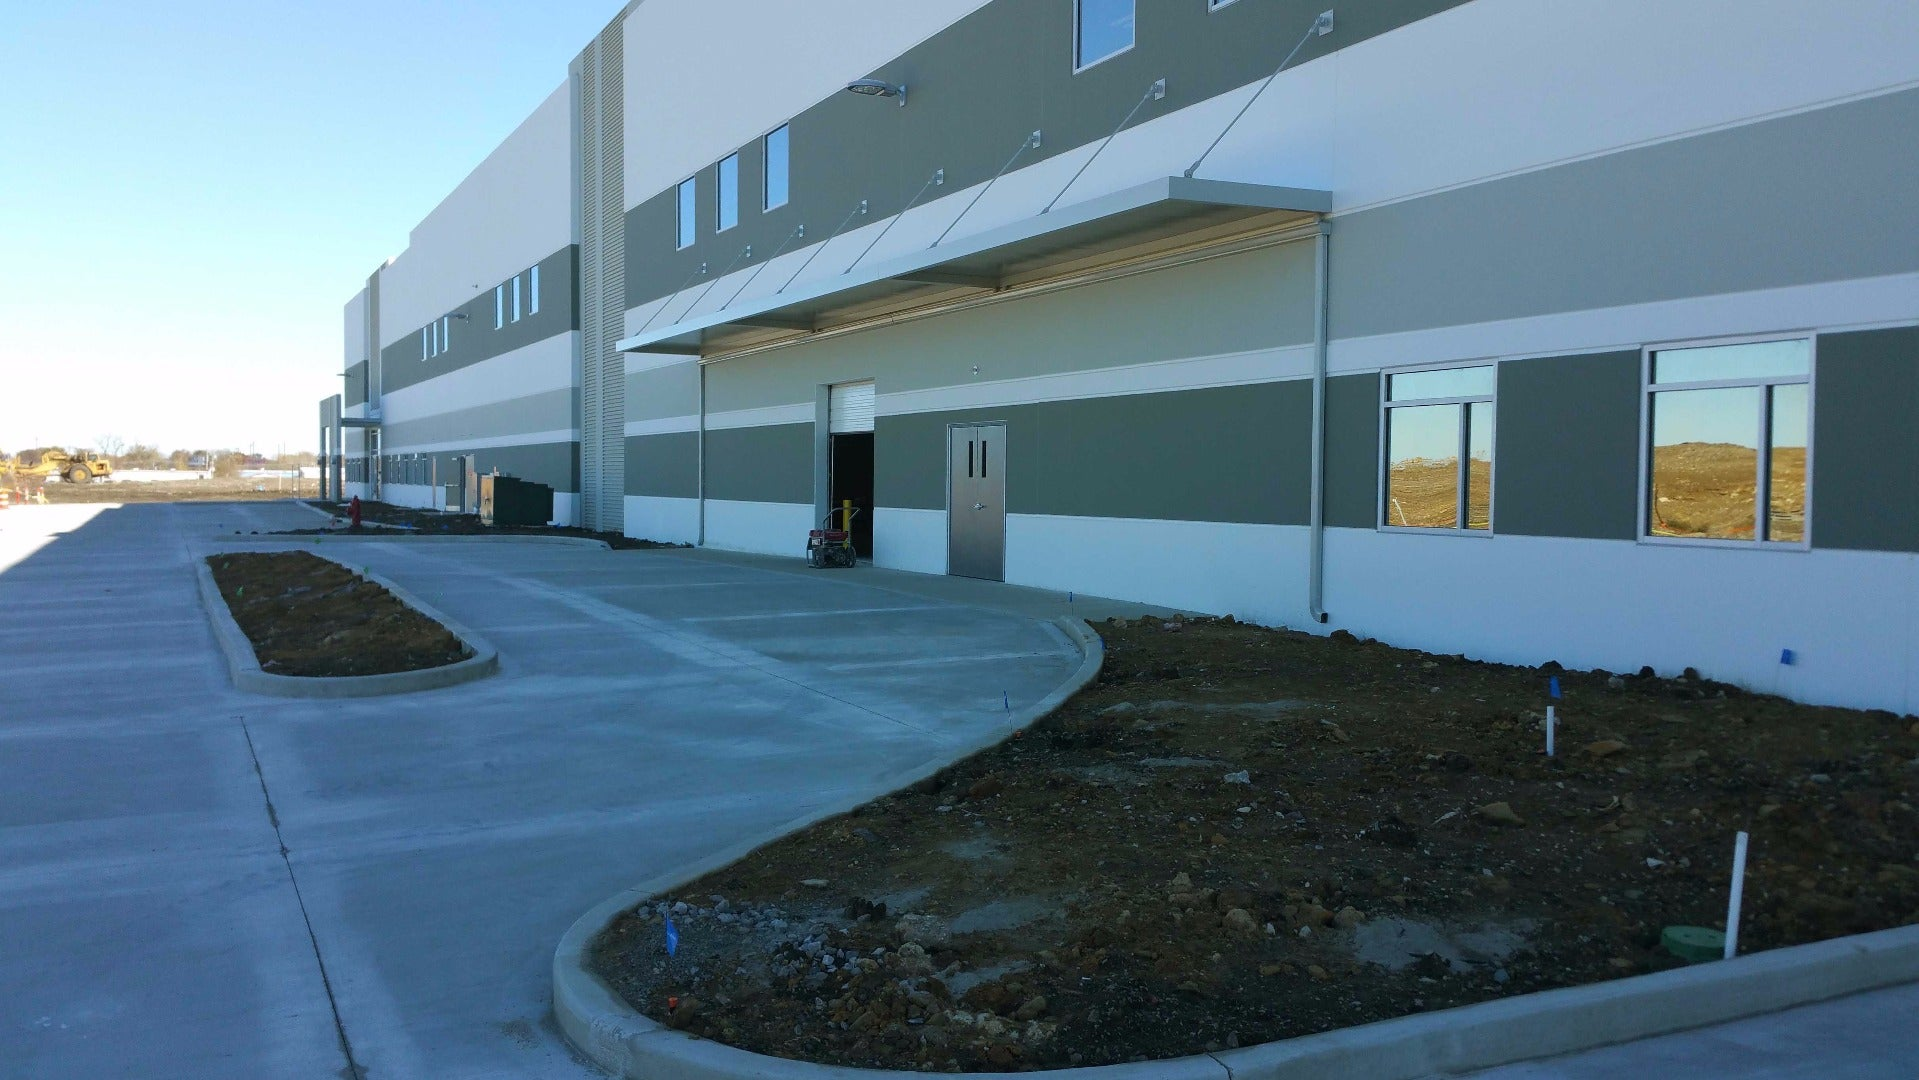 Kadean construction completes aviator 7 in hazelwood Hollywood motors st louis mo